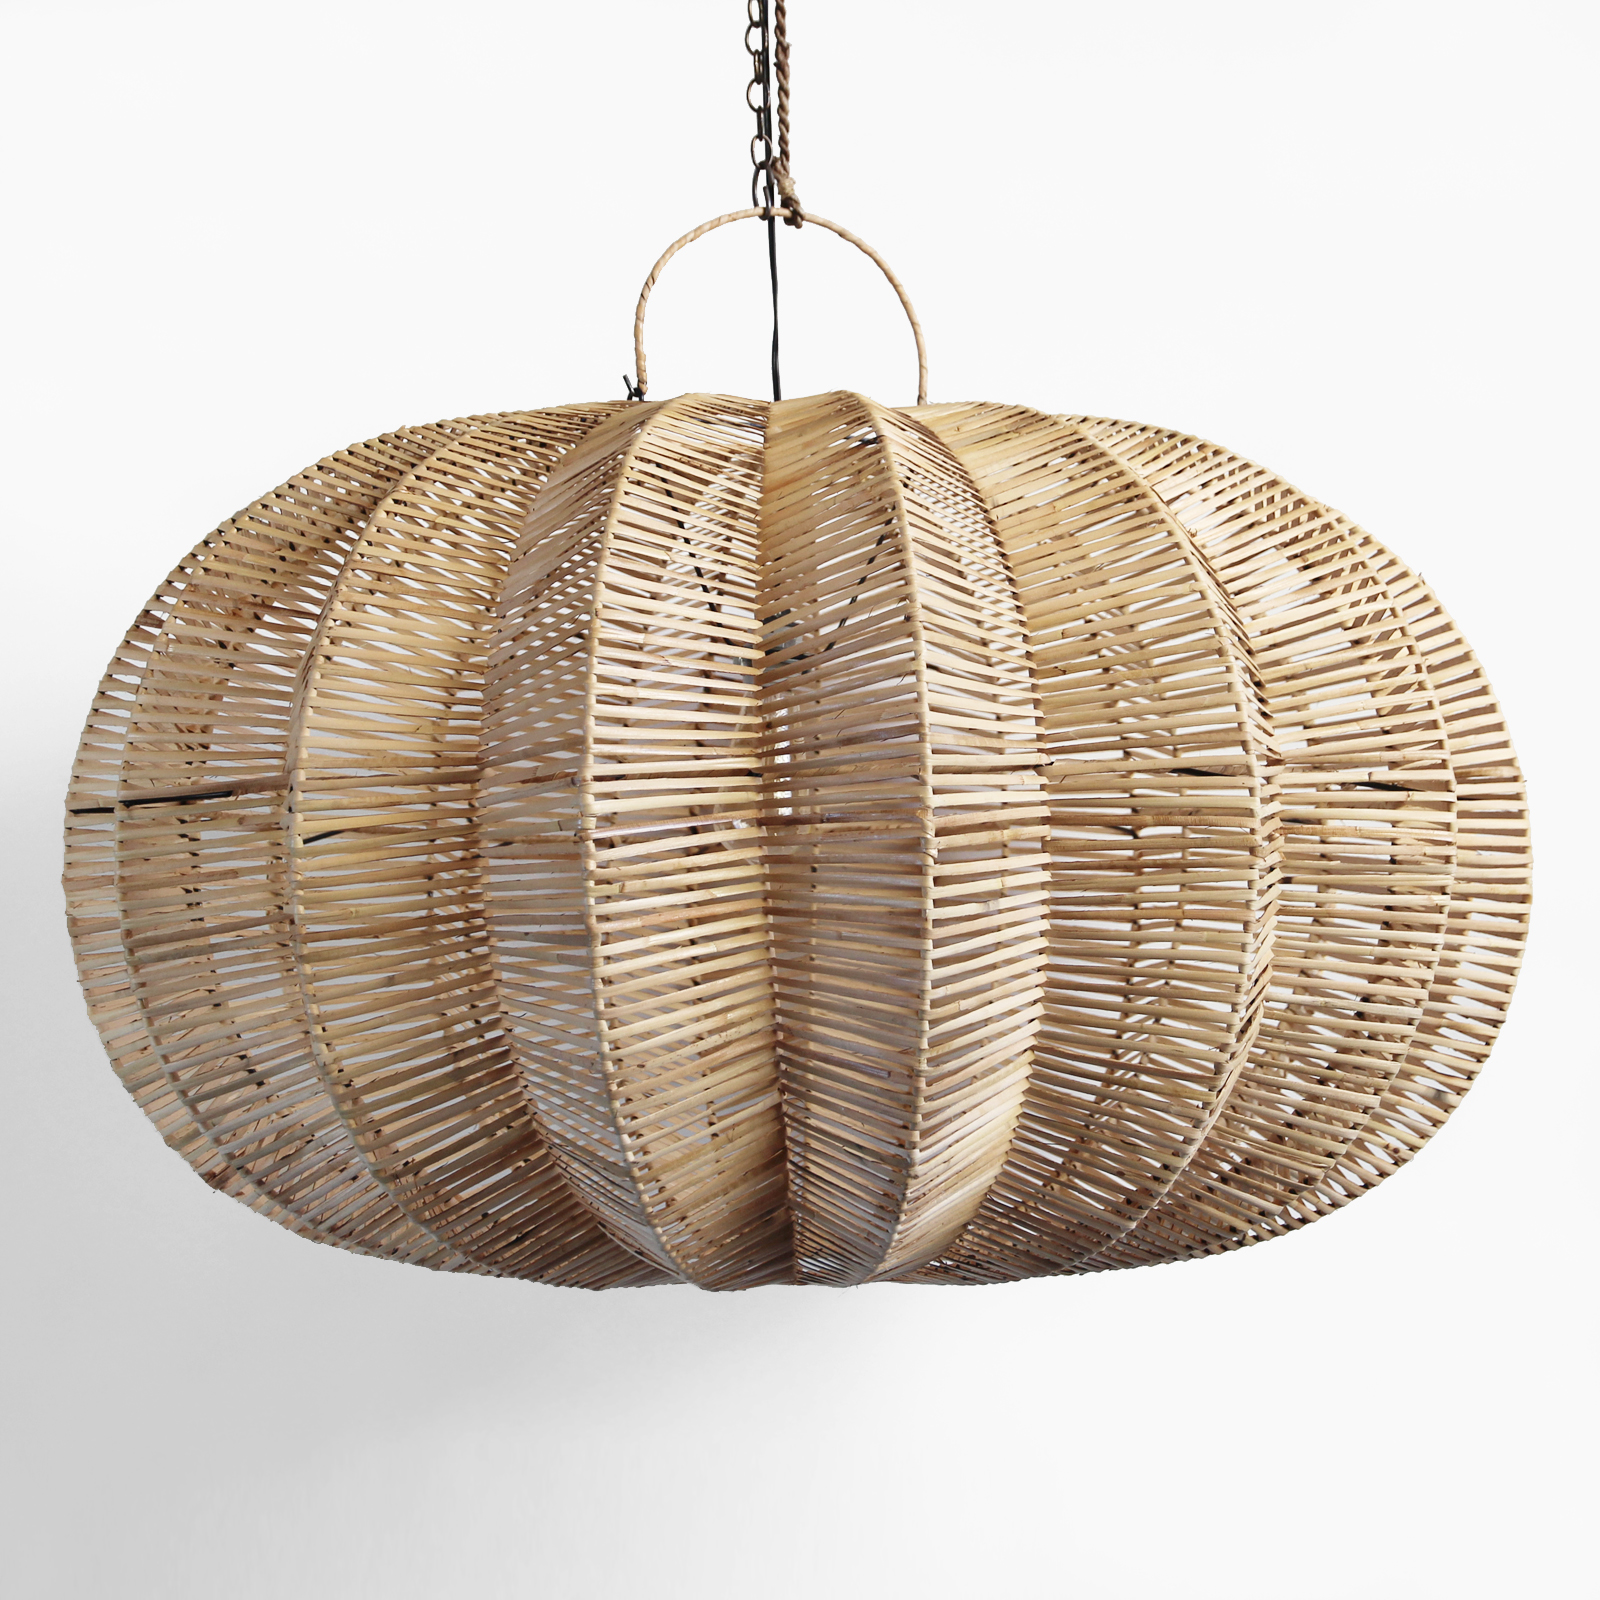 Split Raw Rattan Pumpkin Lantern 40 Furniture Design Mix